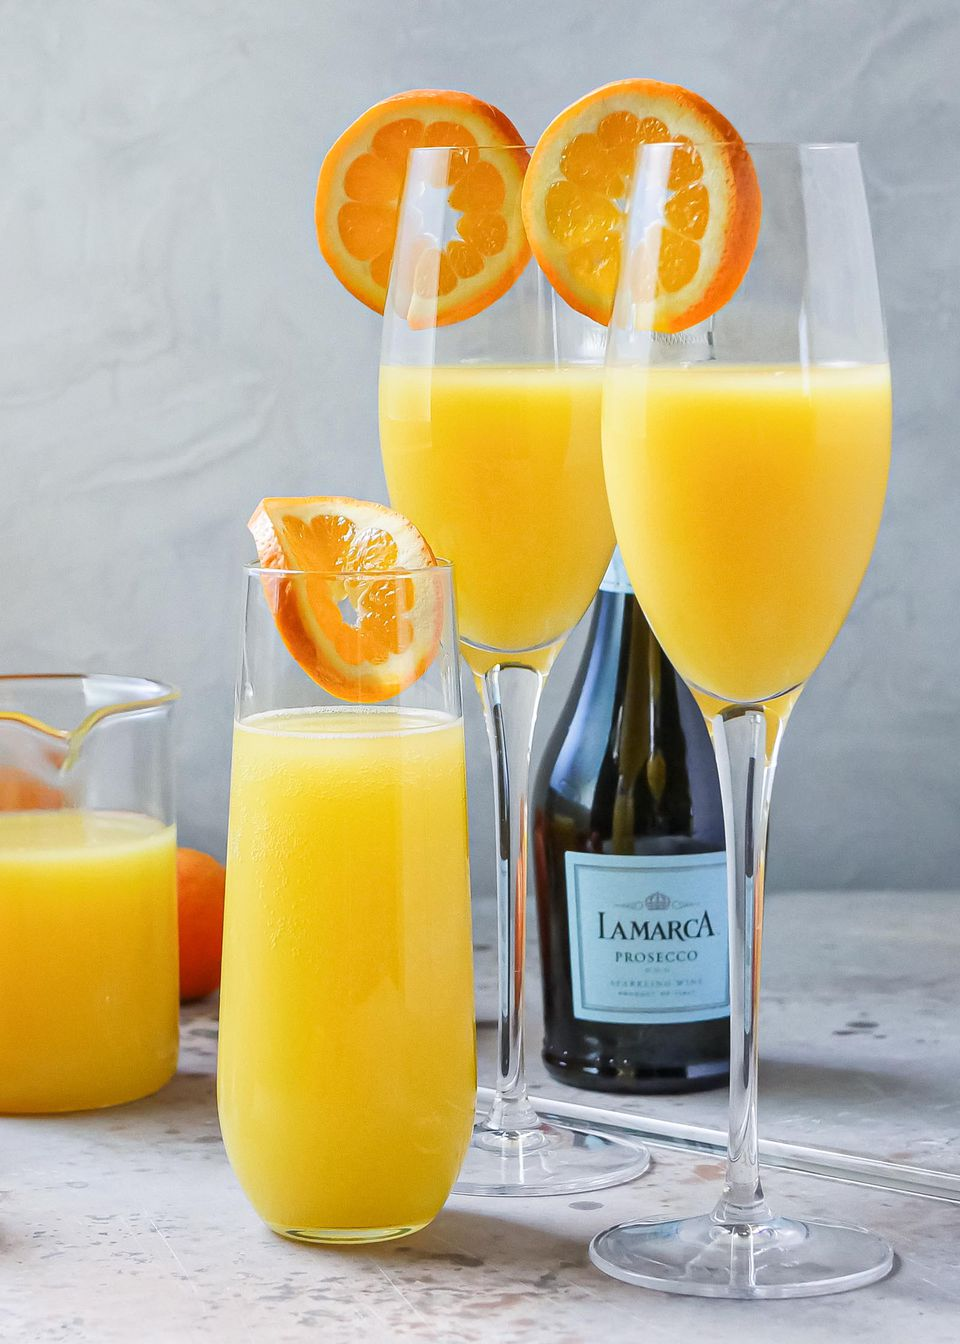 Classic mimosas in champagne flutes. Orange juice and prosecca are behind the glasses.